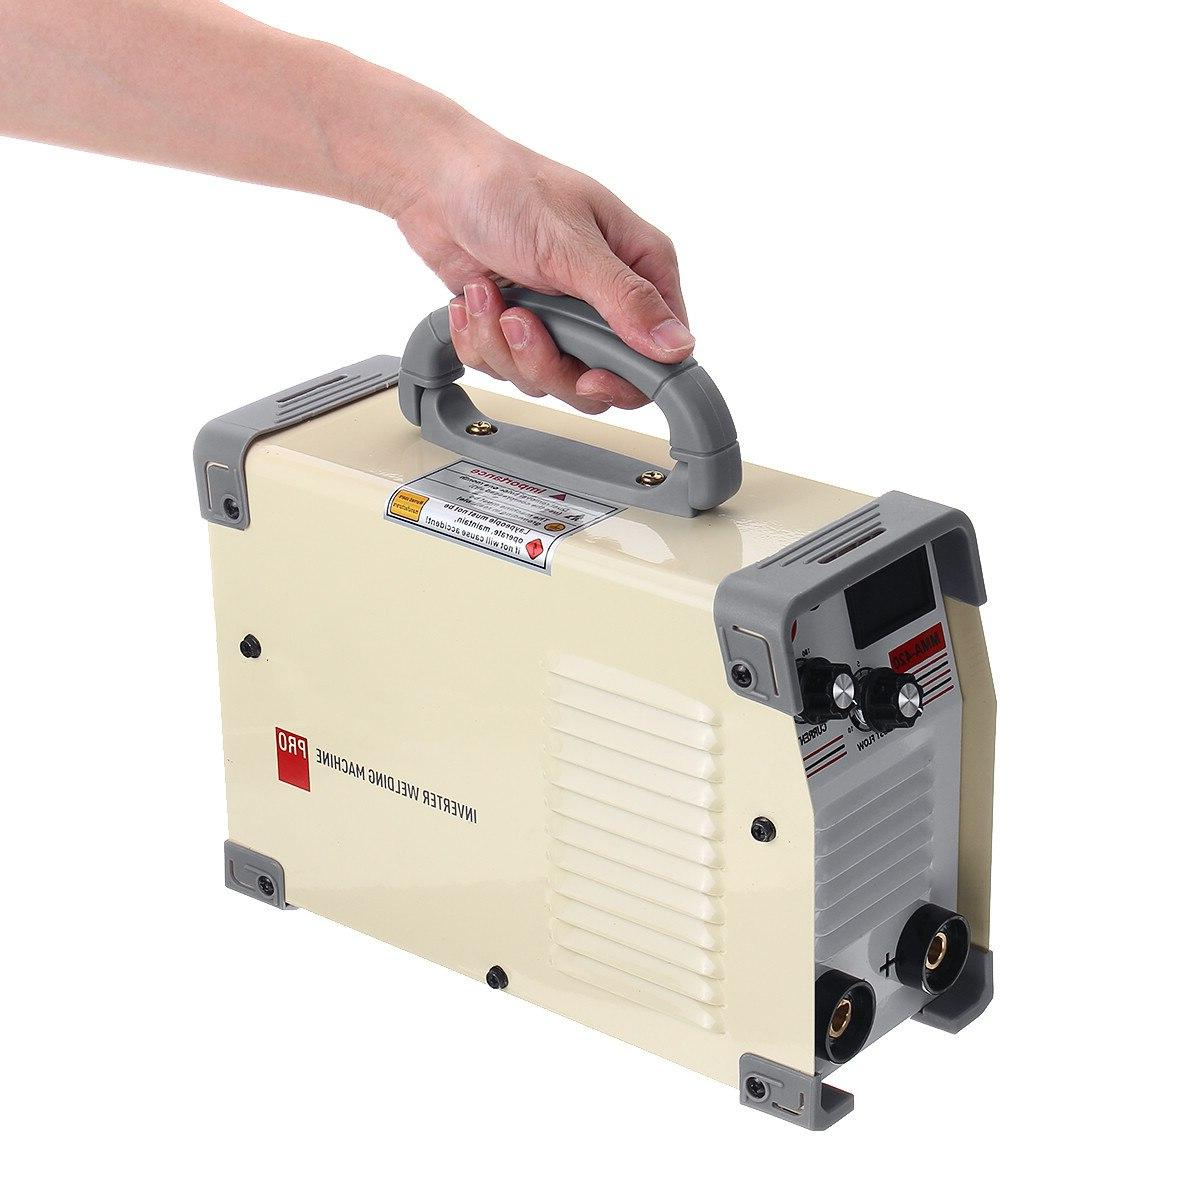 220V 10-420A MMA DC Inverter Machine With Working <font><b>Welder</b></font>